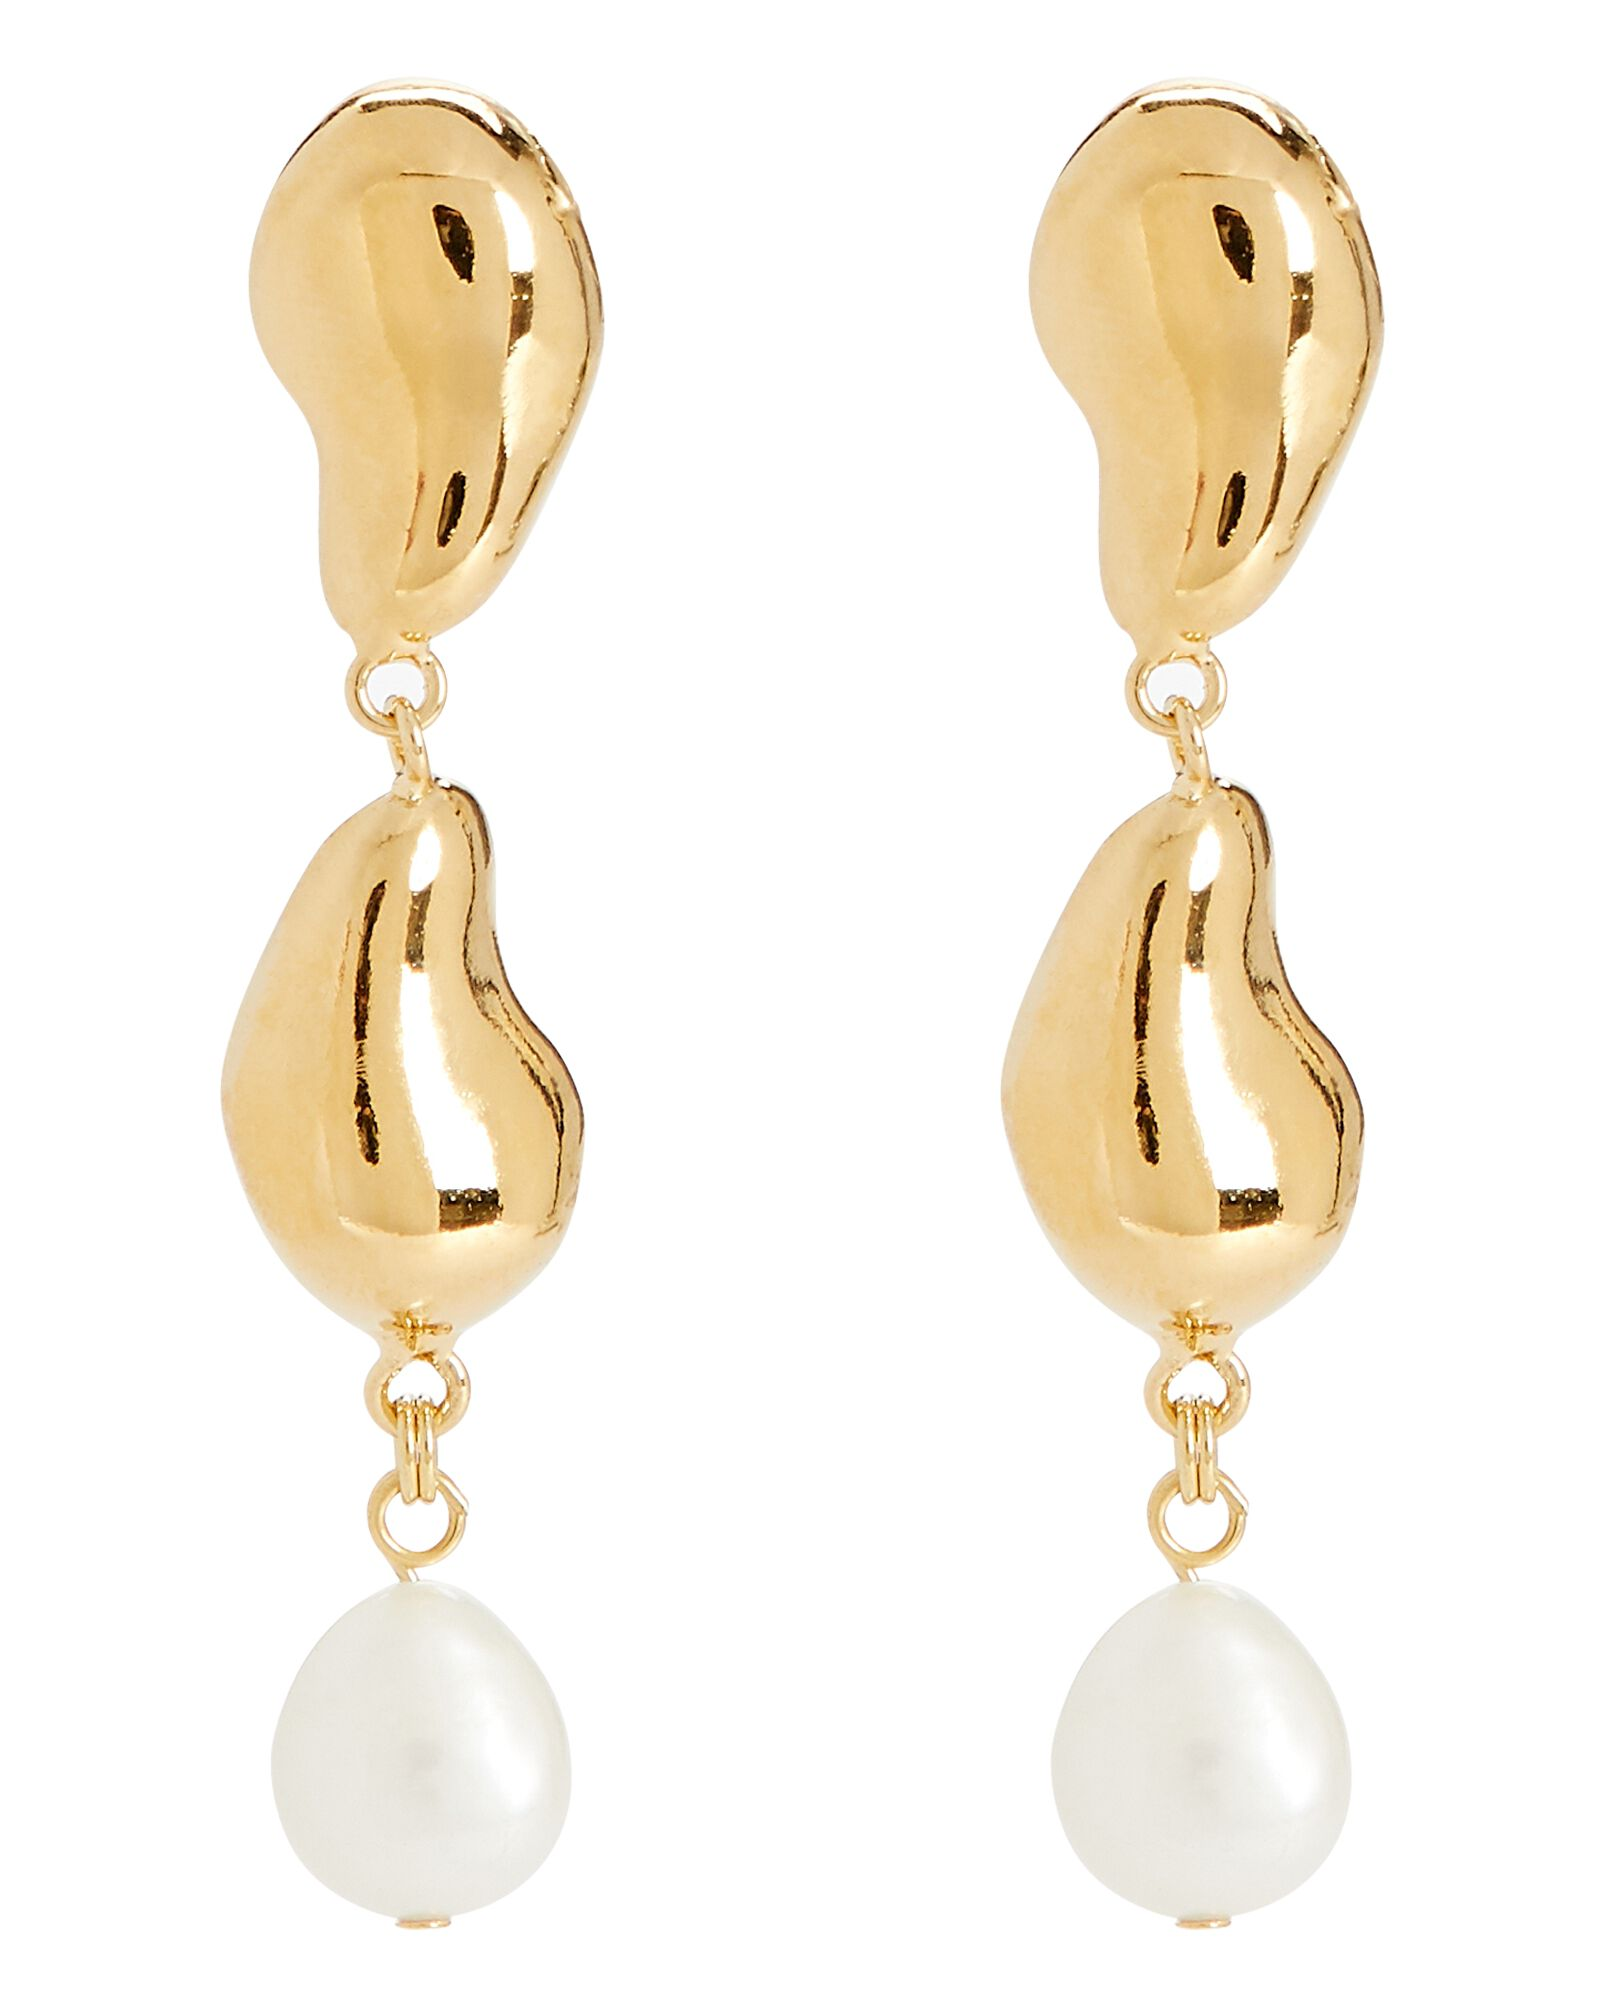 Oceanus Mismatched Earrings, GOLD, hi-res